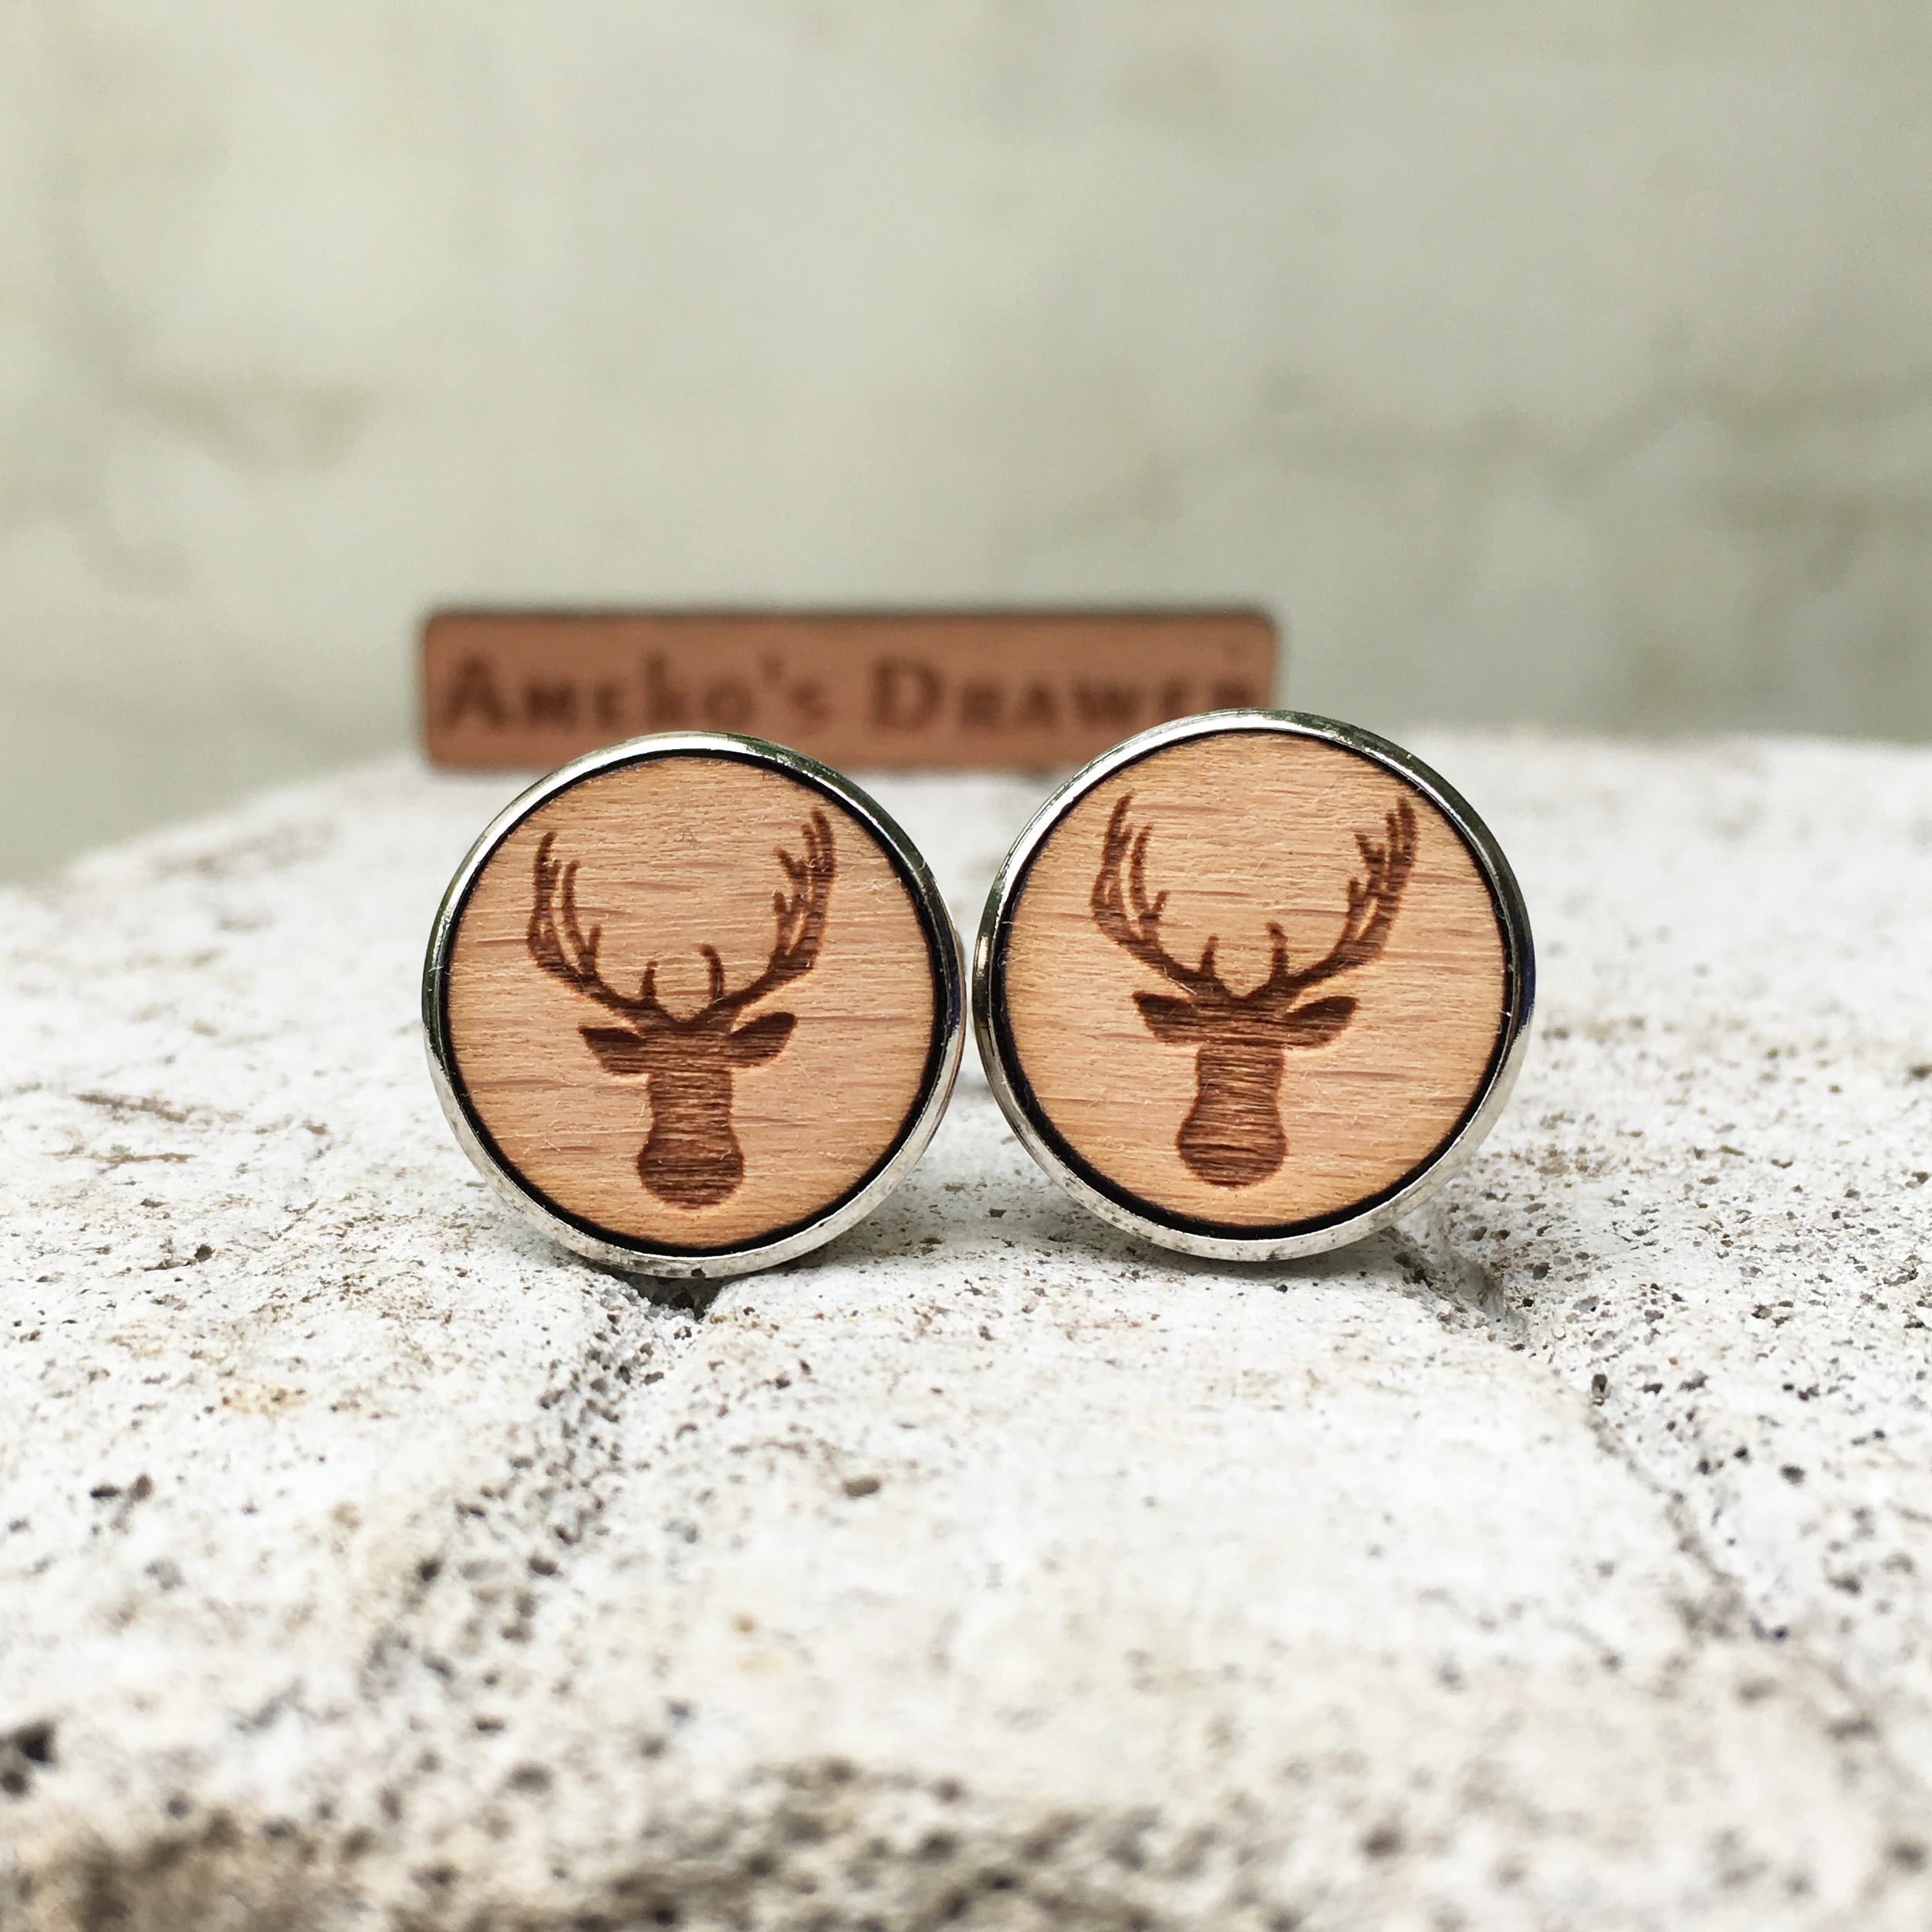 Deer Wooden Cuff Links Animal Wedding Gift Groomsmen Gift Deer Head Wood Cuff Links Deer Horn Jewelry X 1 Pair